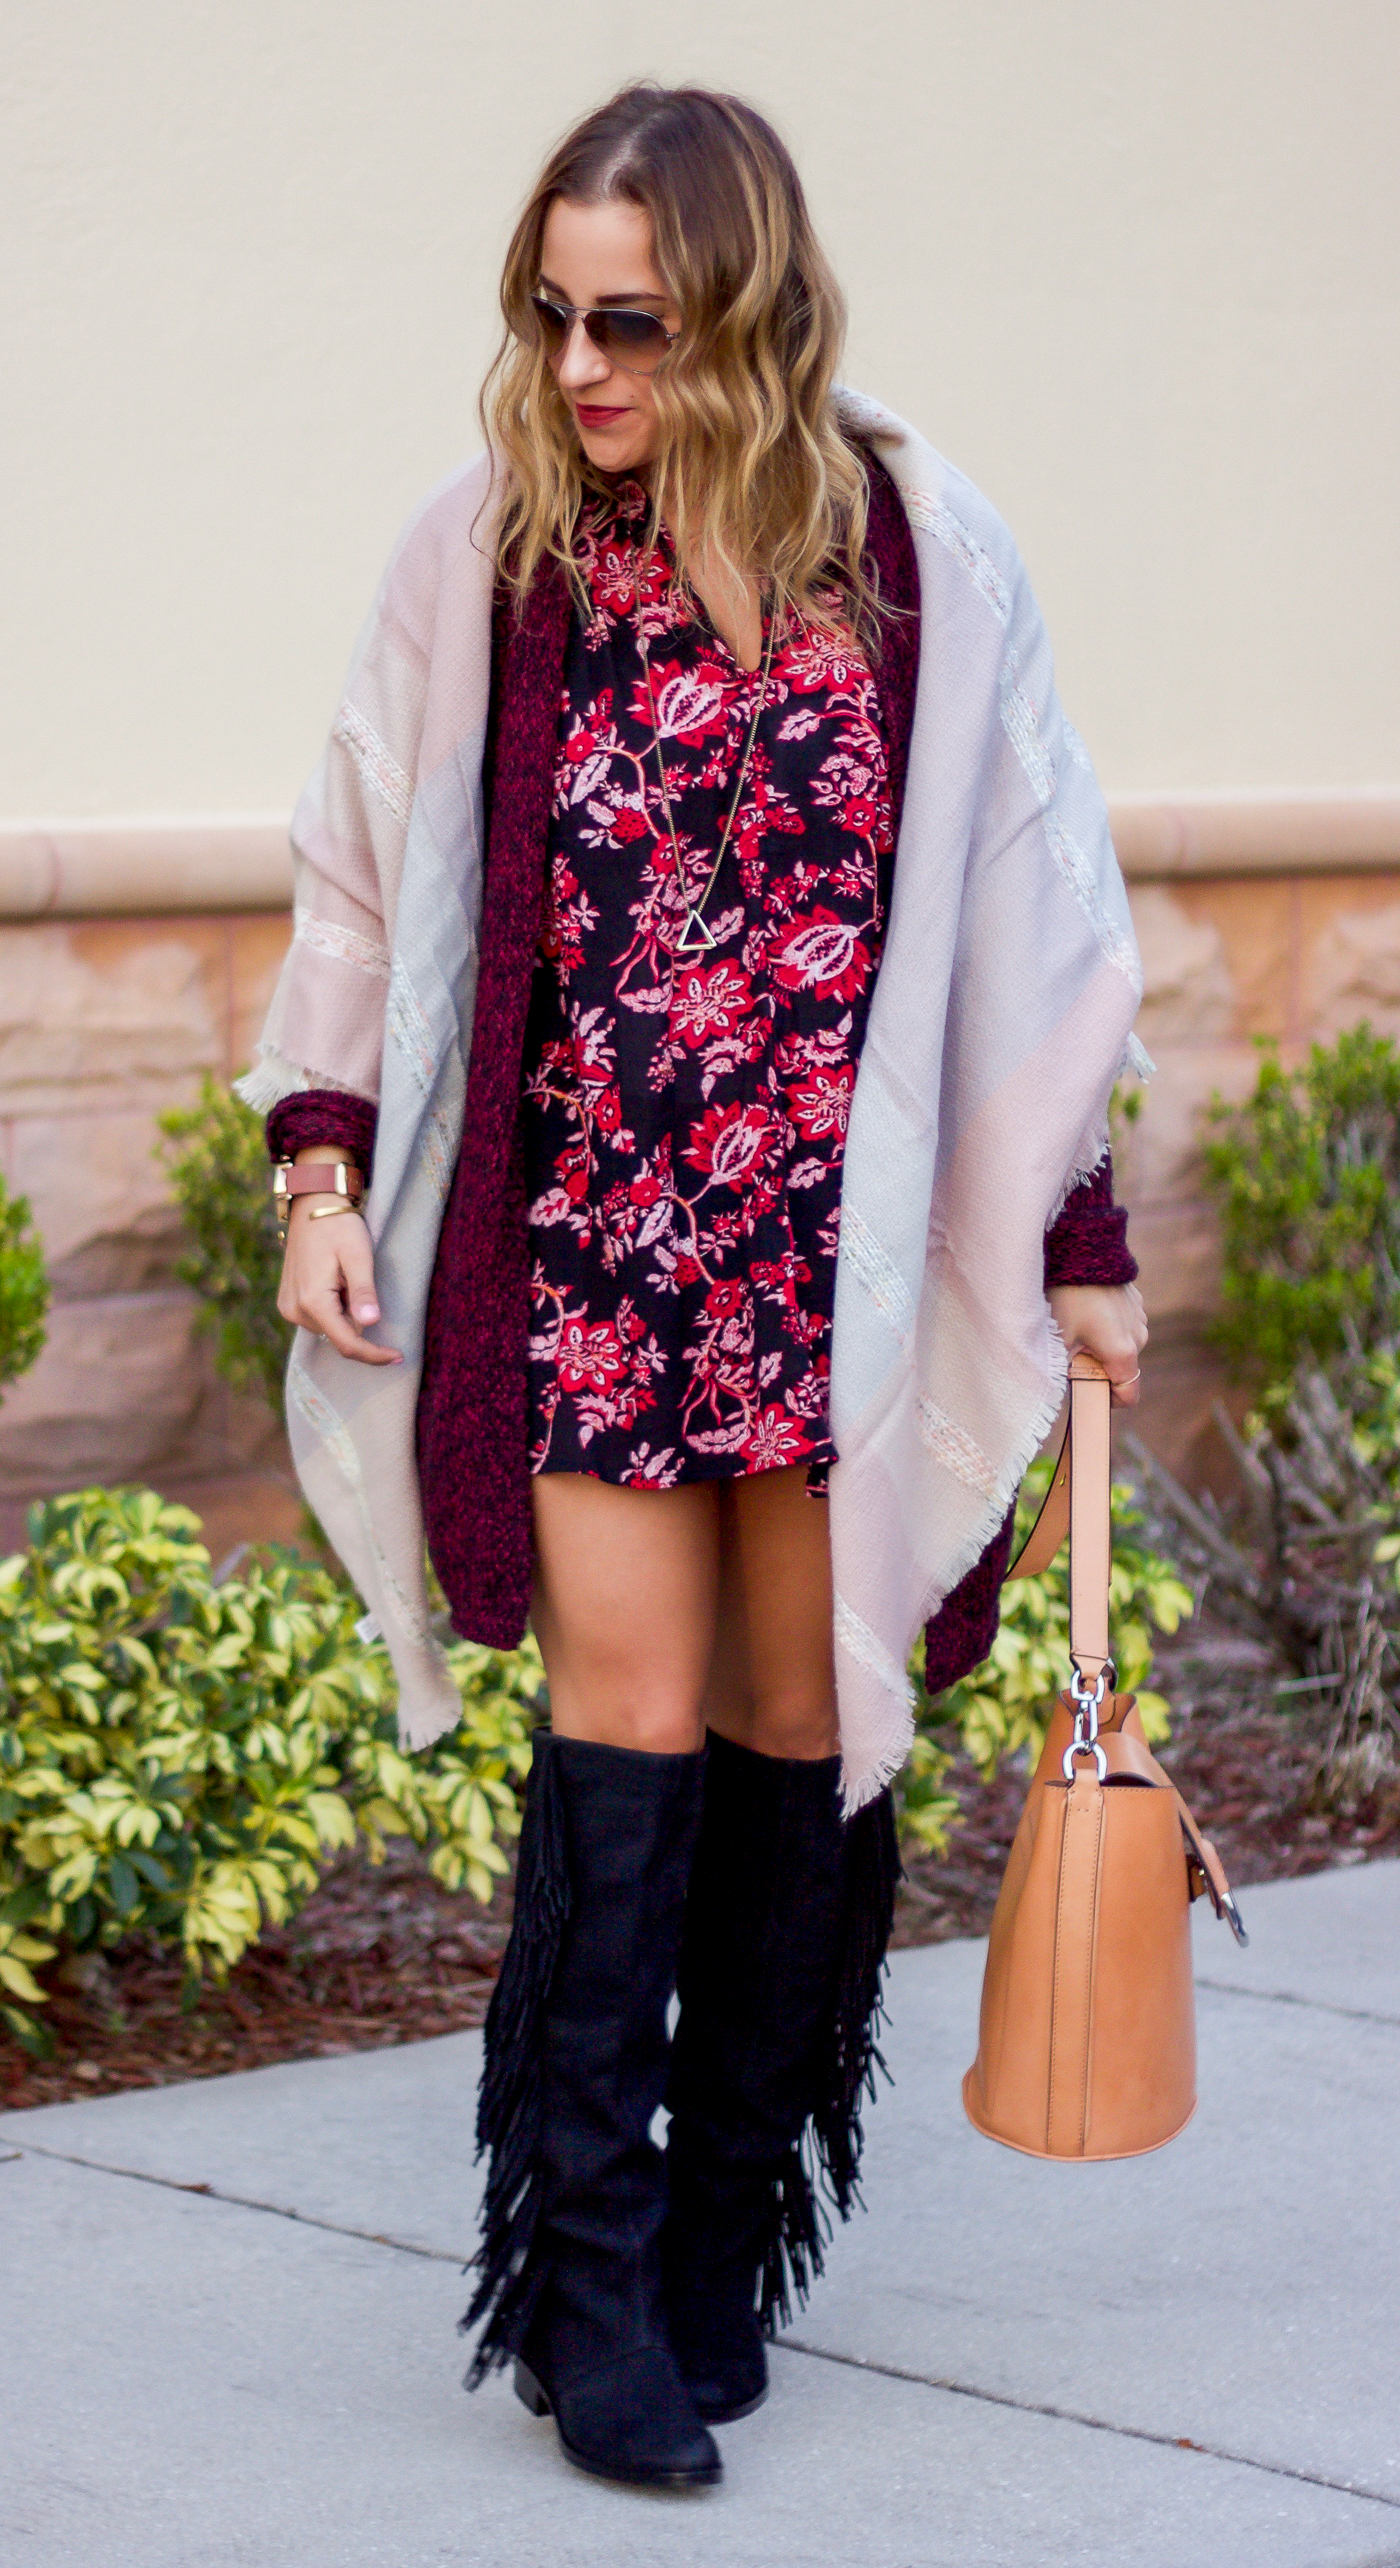 How to wear an oversized blanket scarf with a shift dress and oversized cardigan